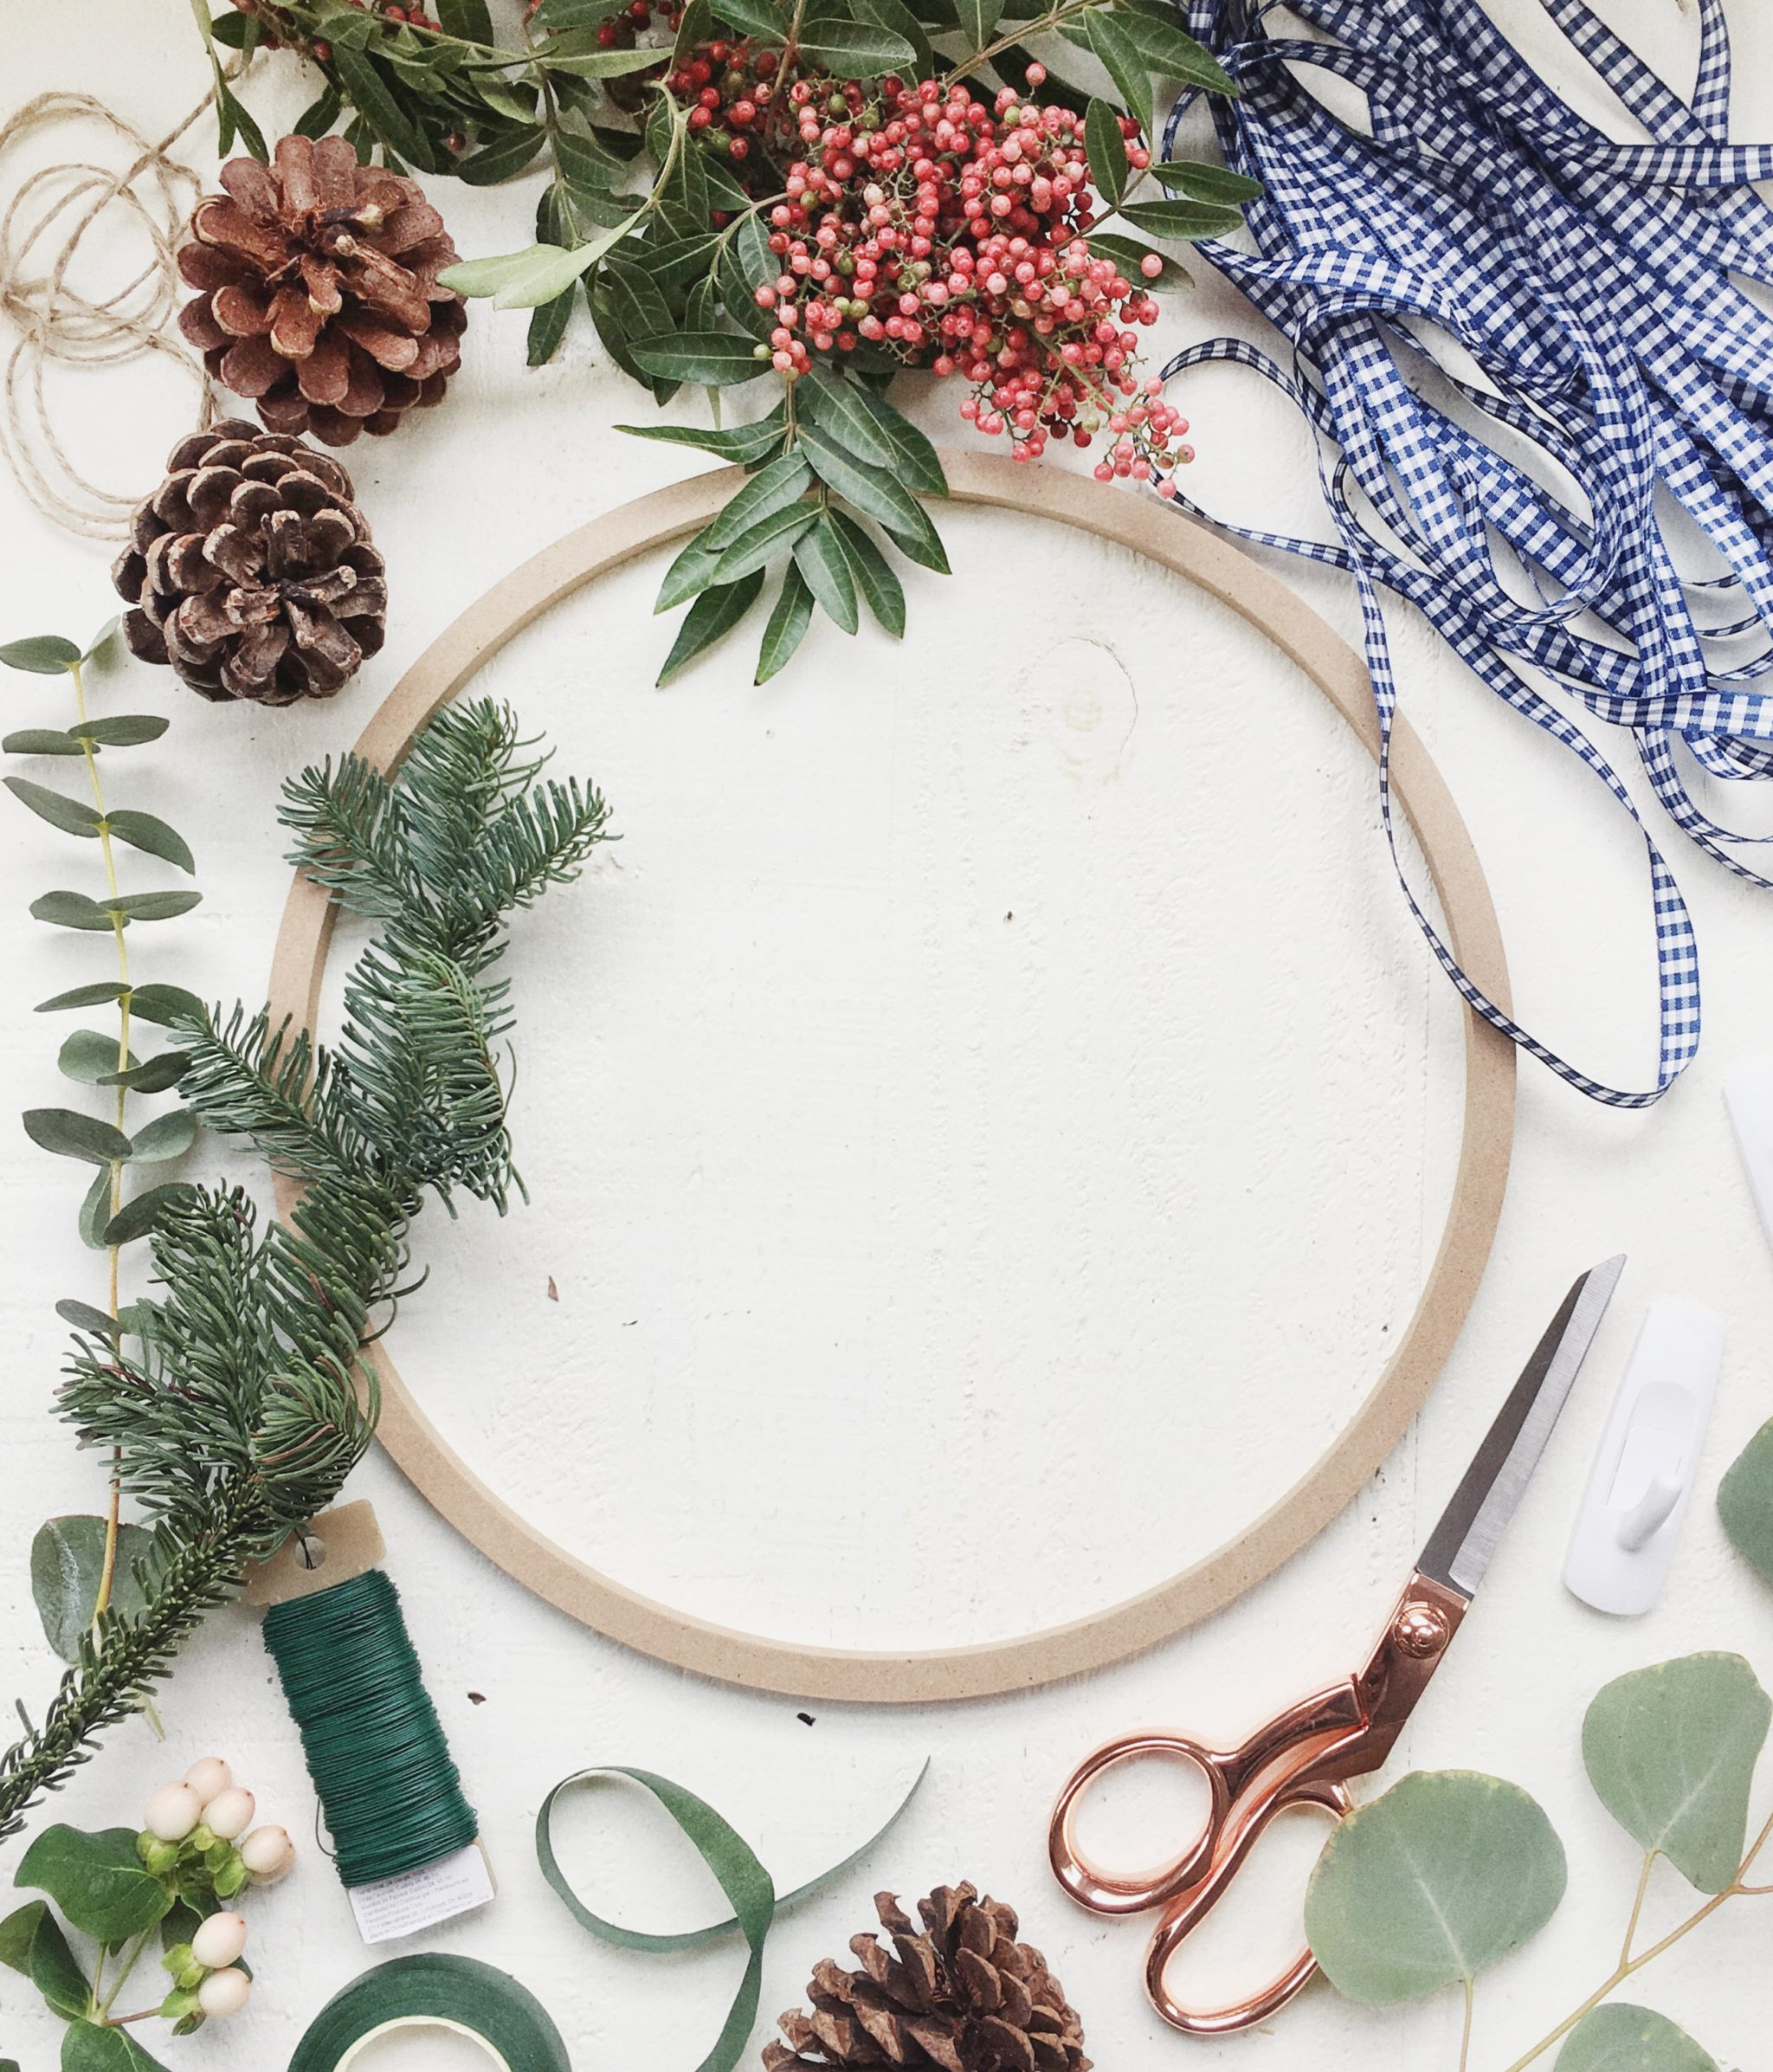 Holiday Wreath Tutorial